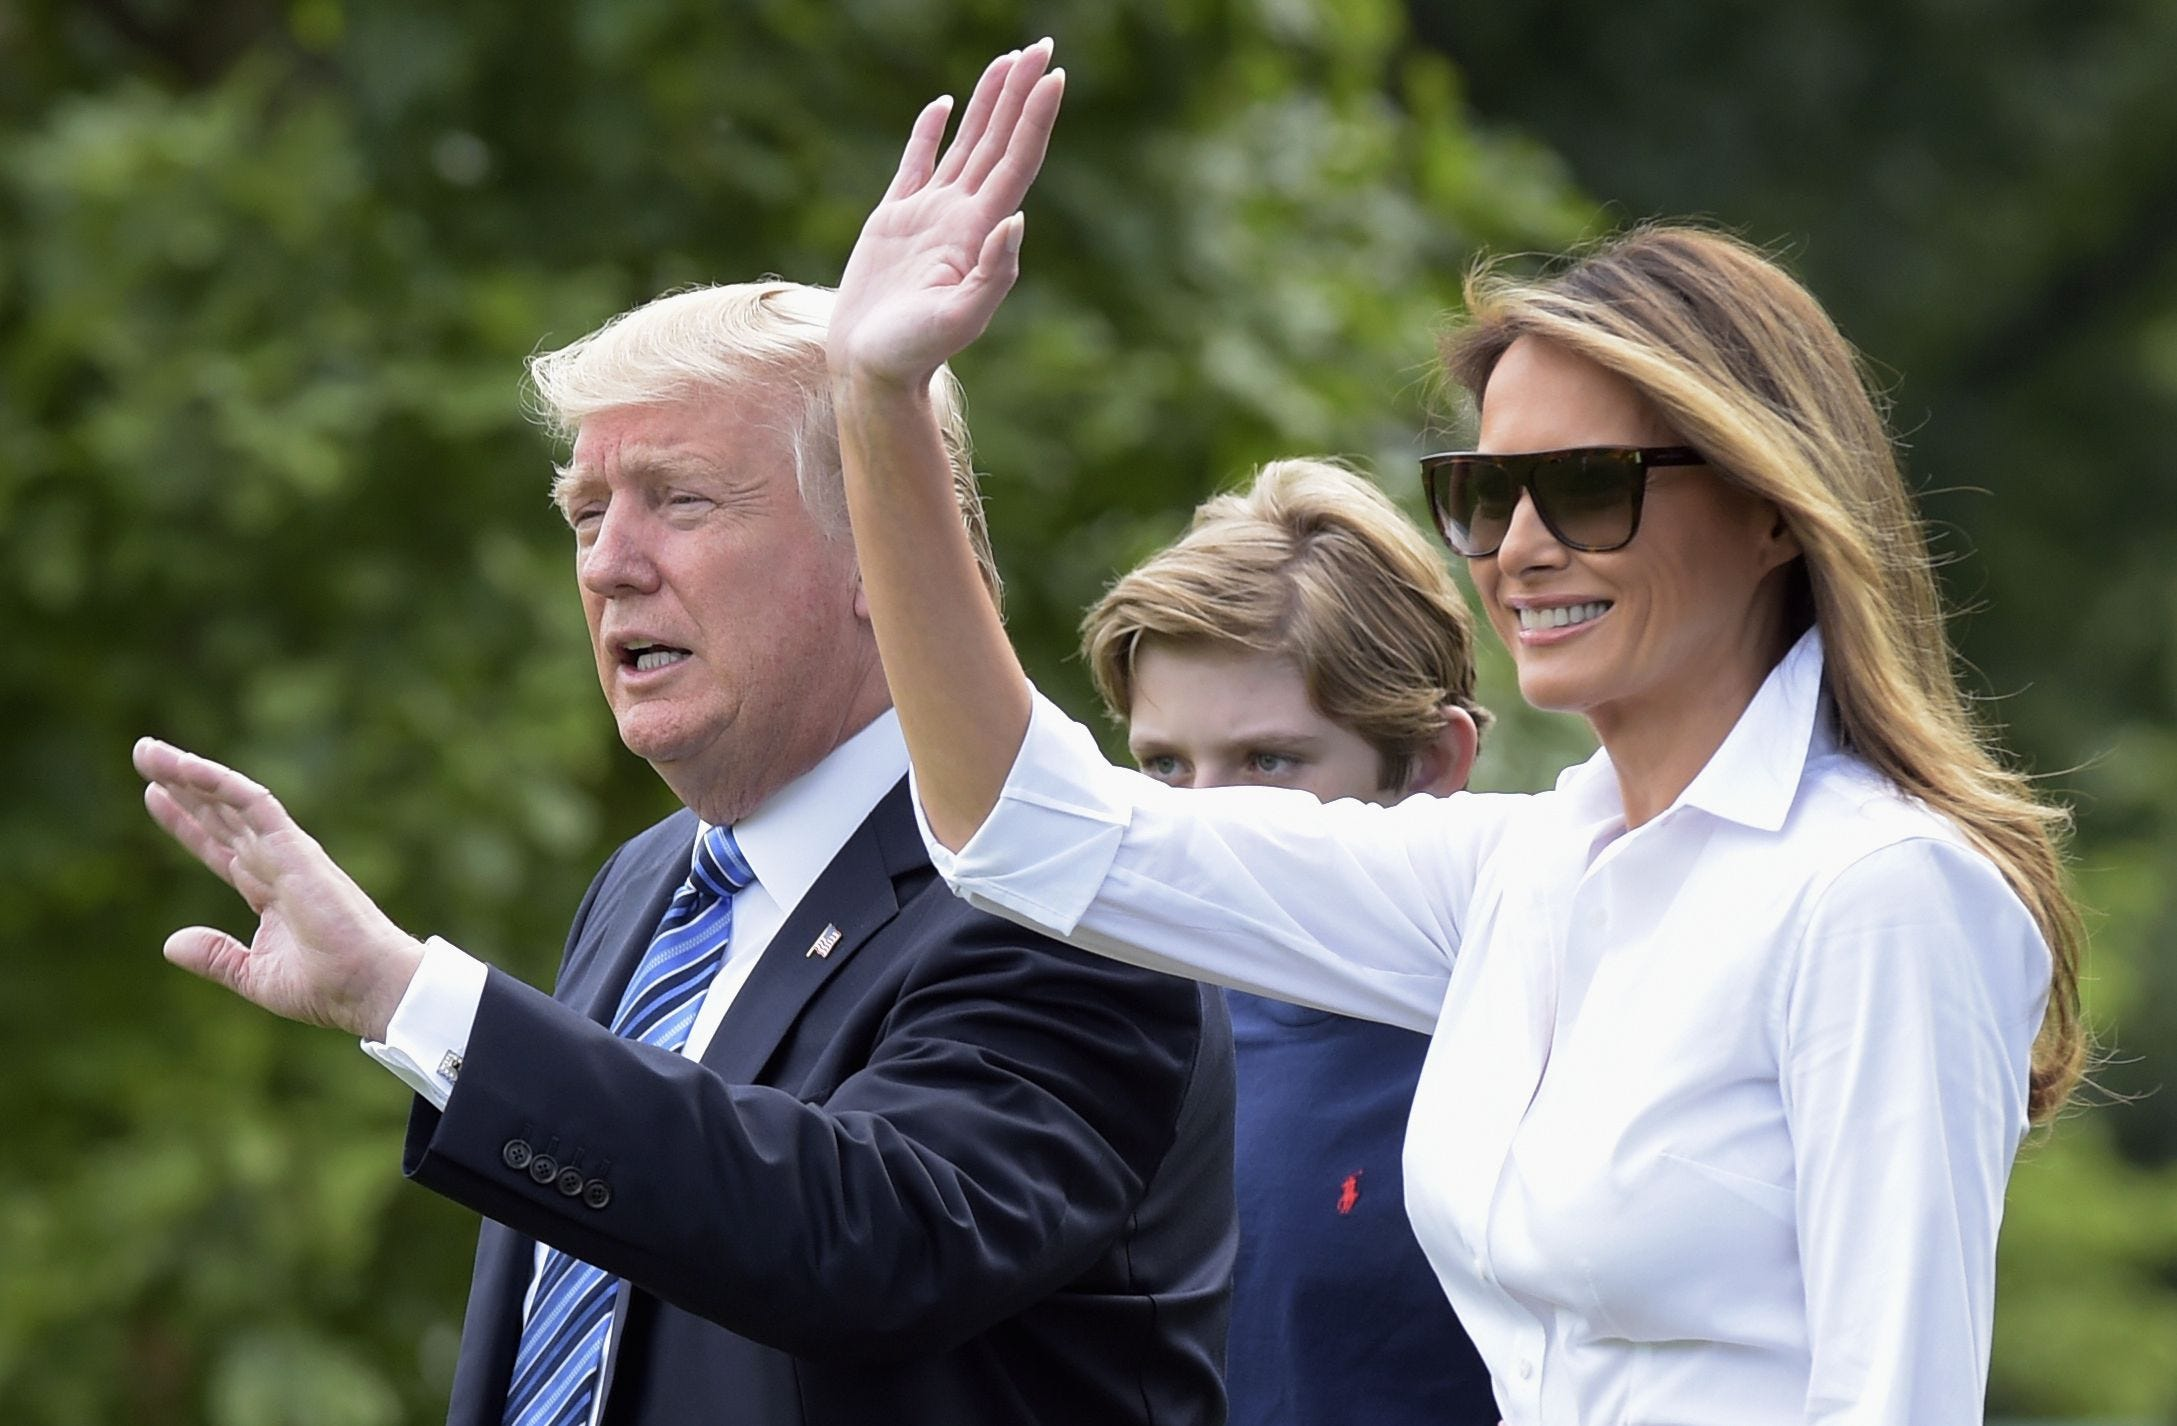 636345304875789870-AP-TRUMP-92061499 After moving to D.C., Melania Trump is becoming more vocal